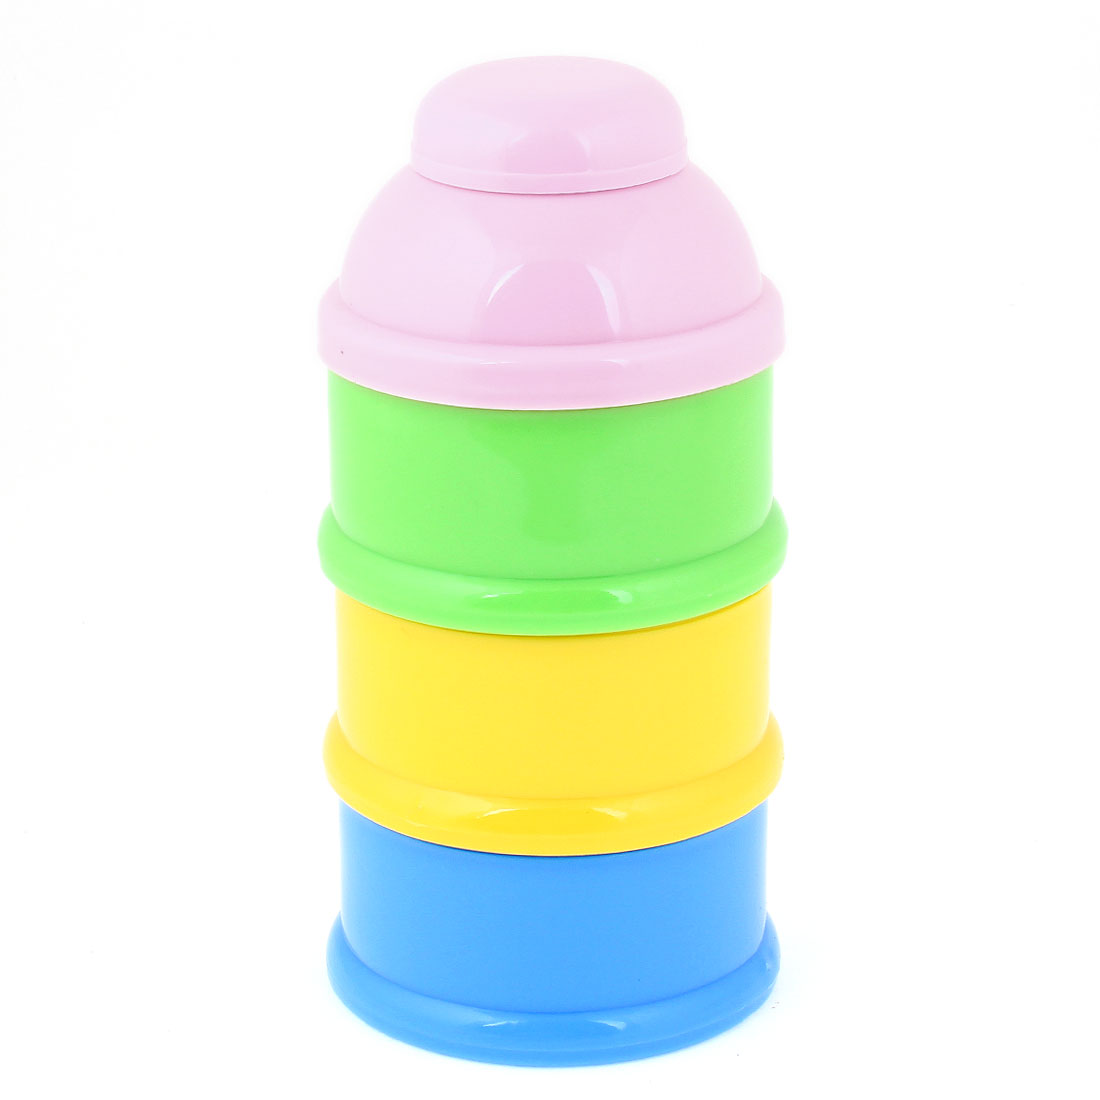 Baby 3 Tiers Milk Powder Portable Container Storage Bowl